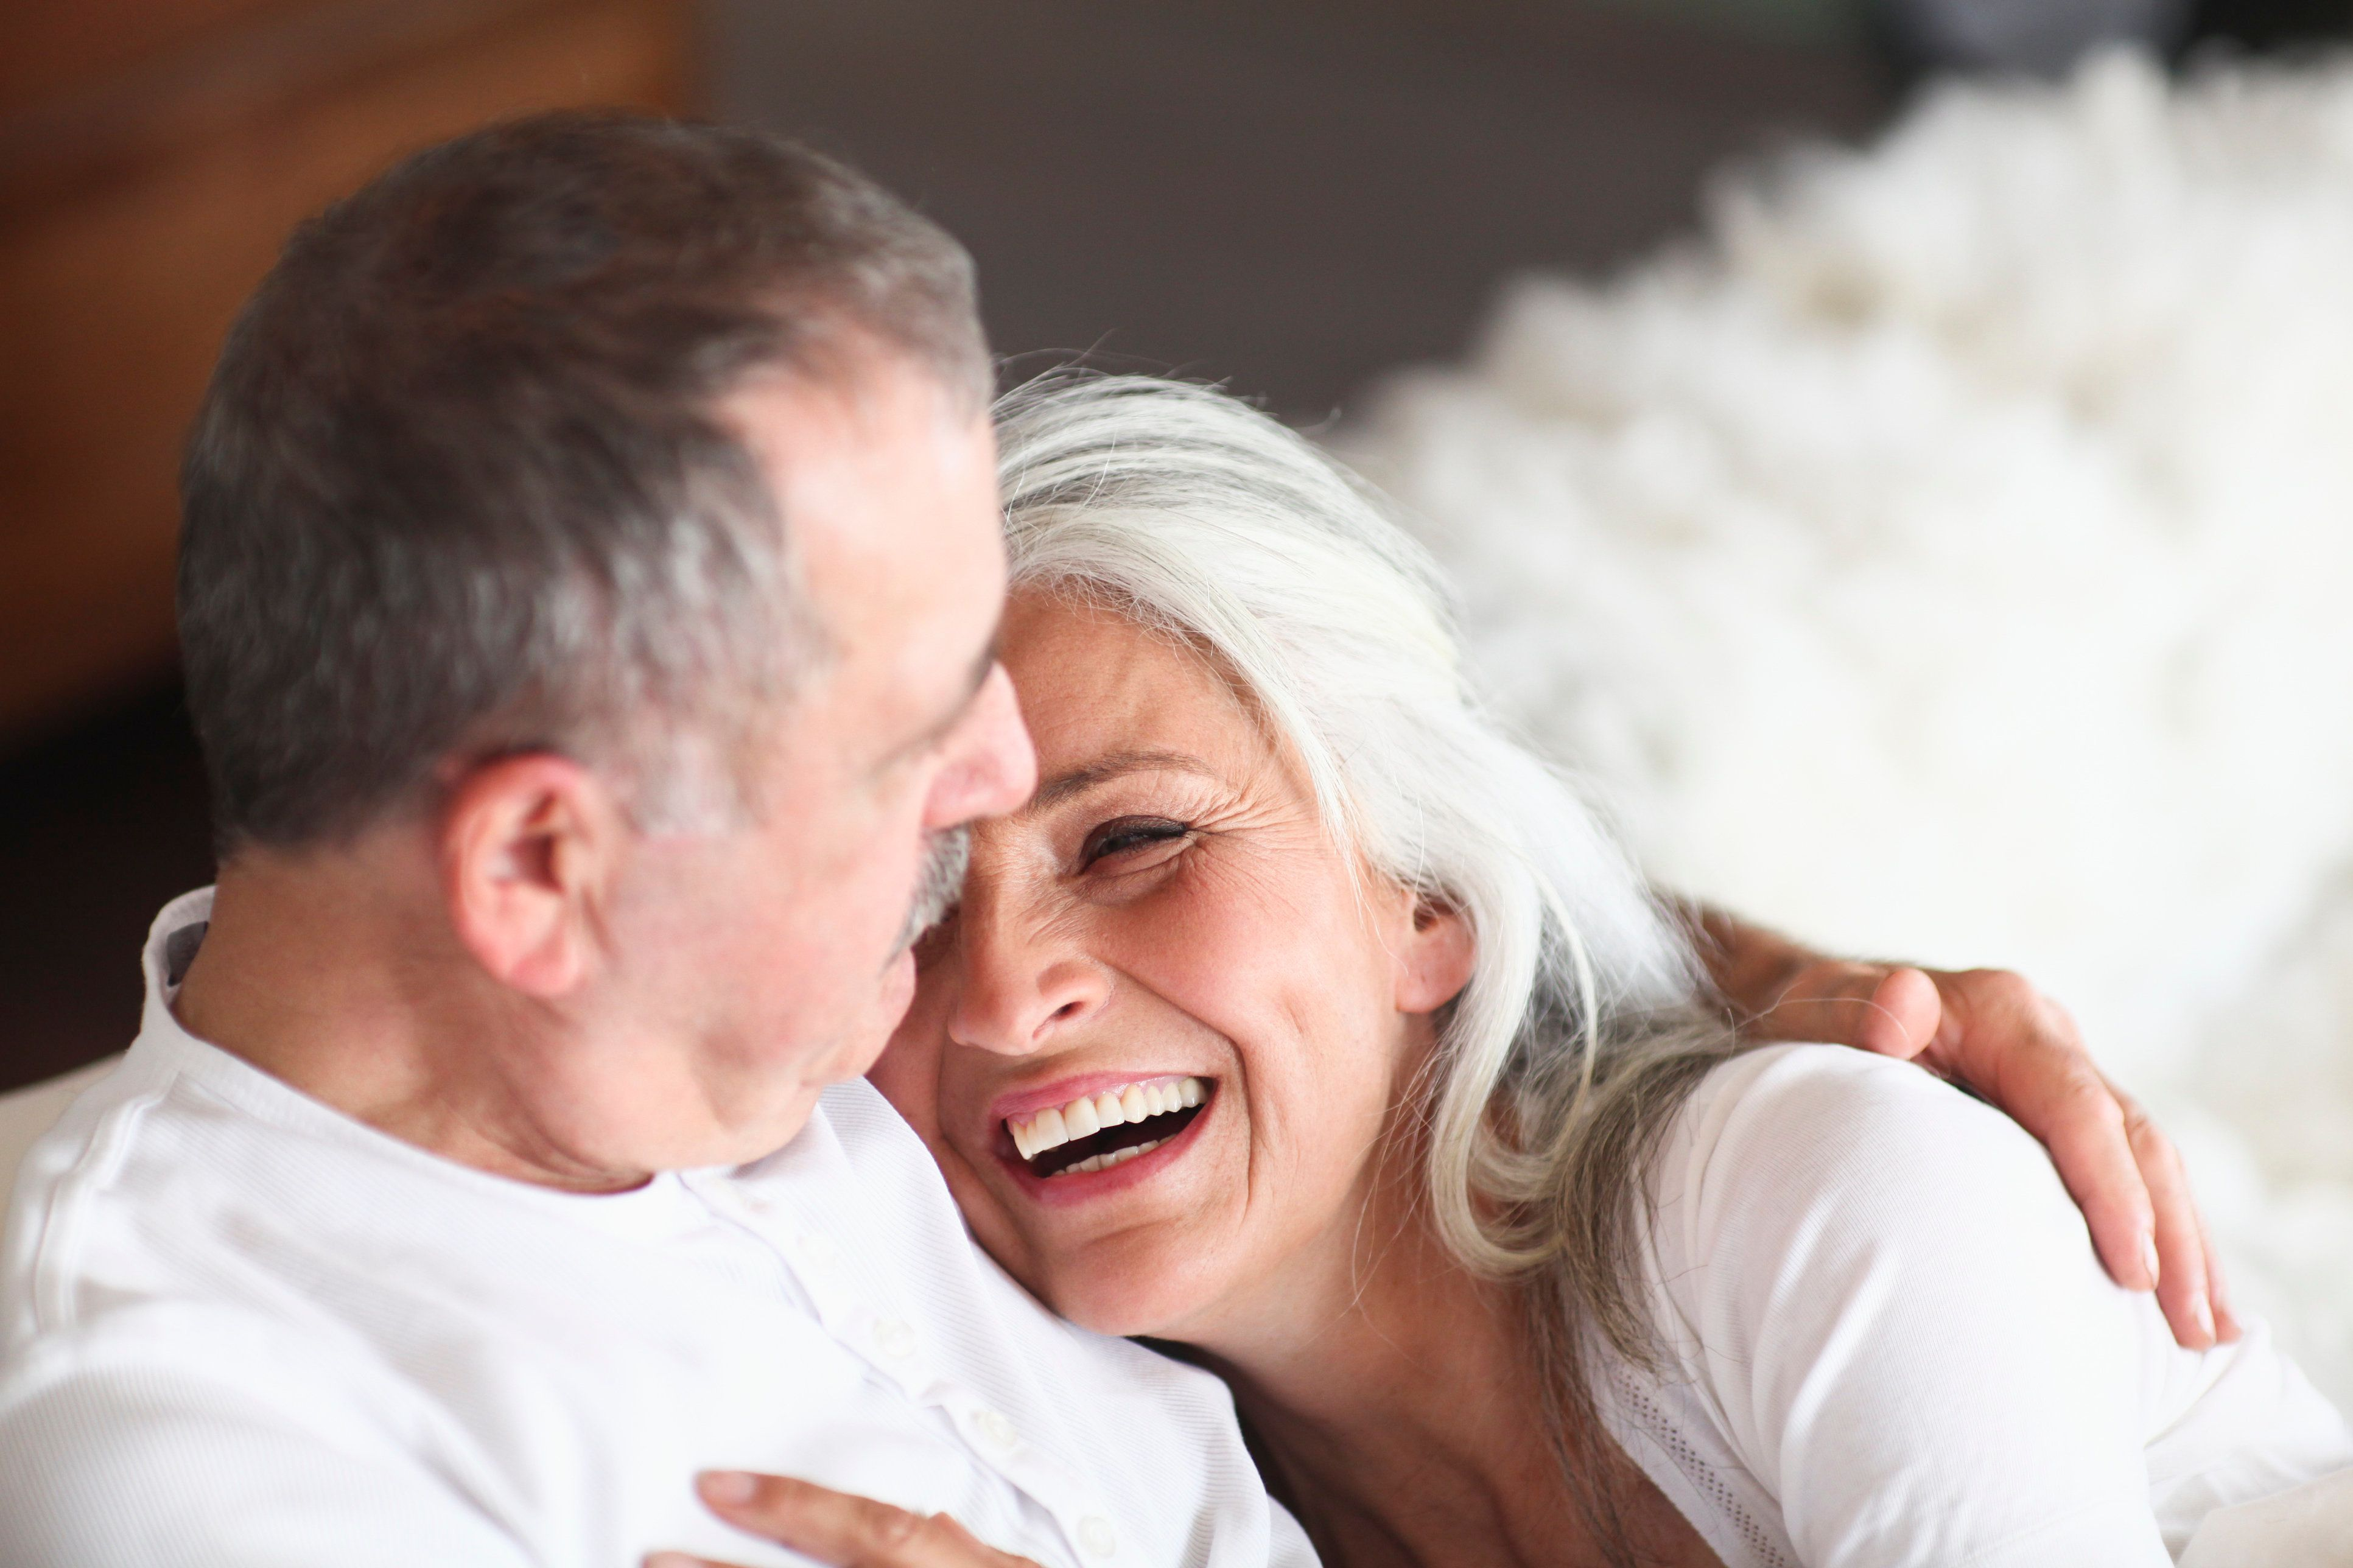 Middle aged men and women sex